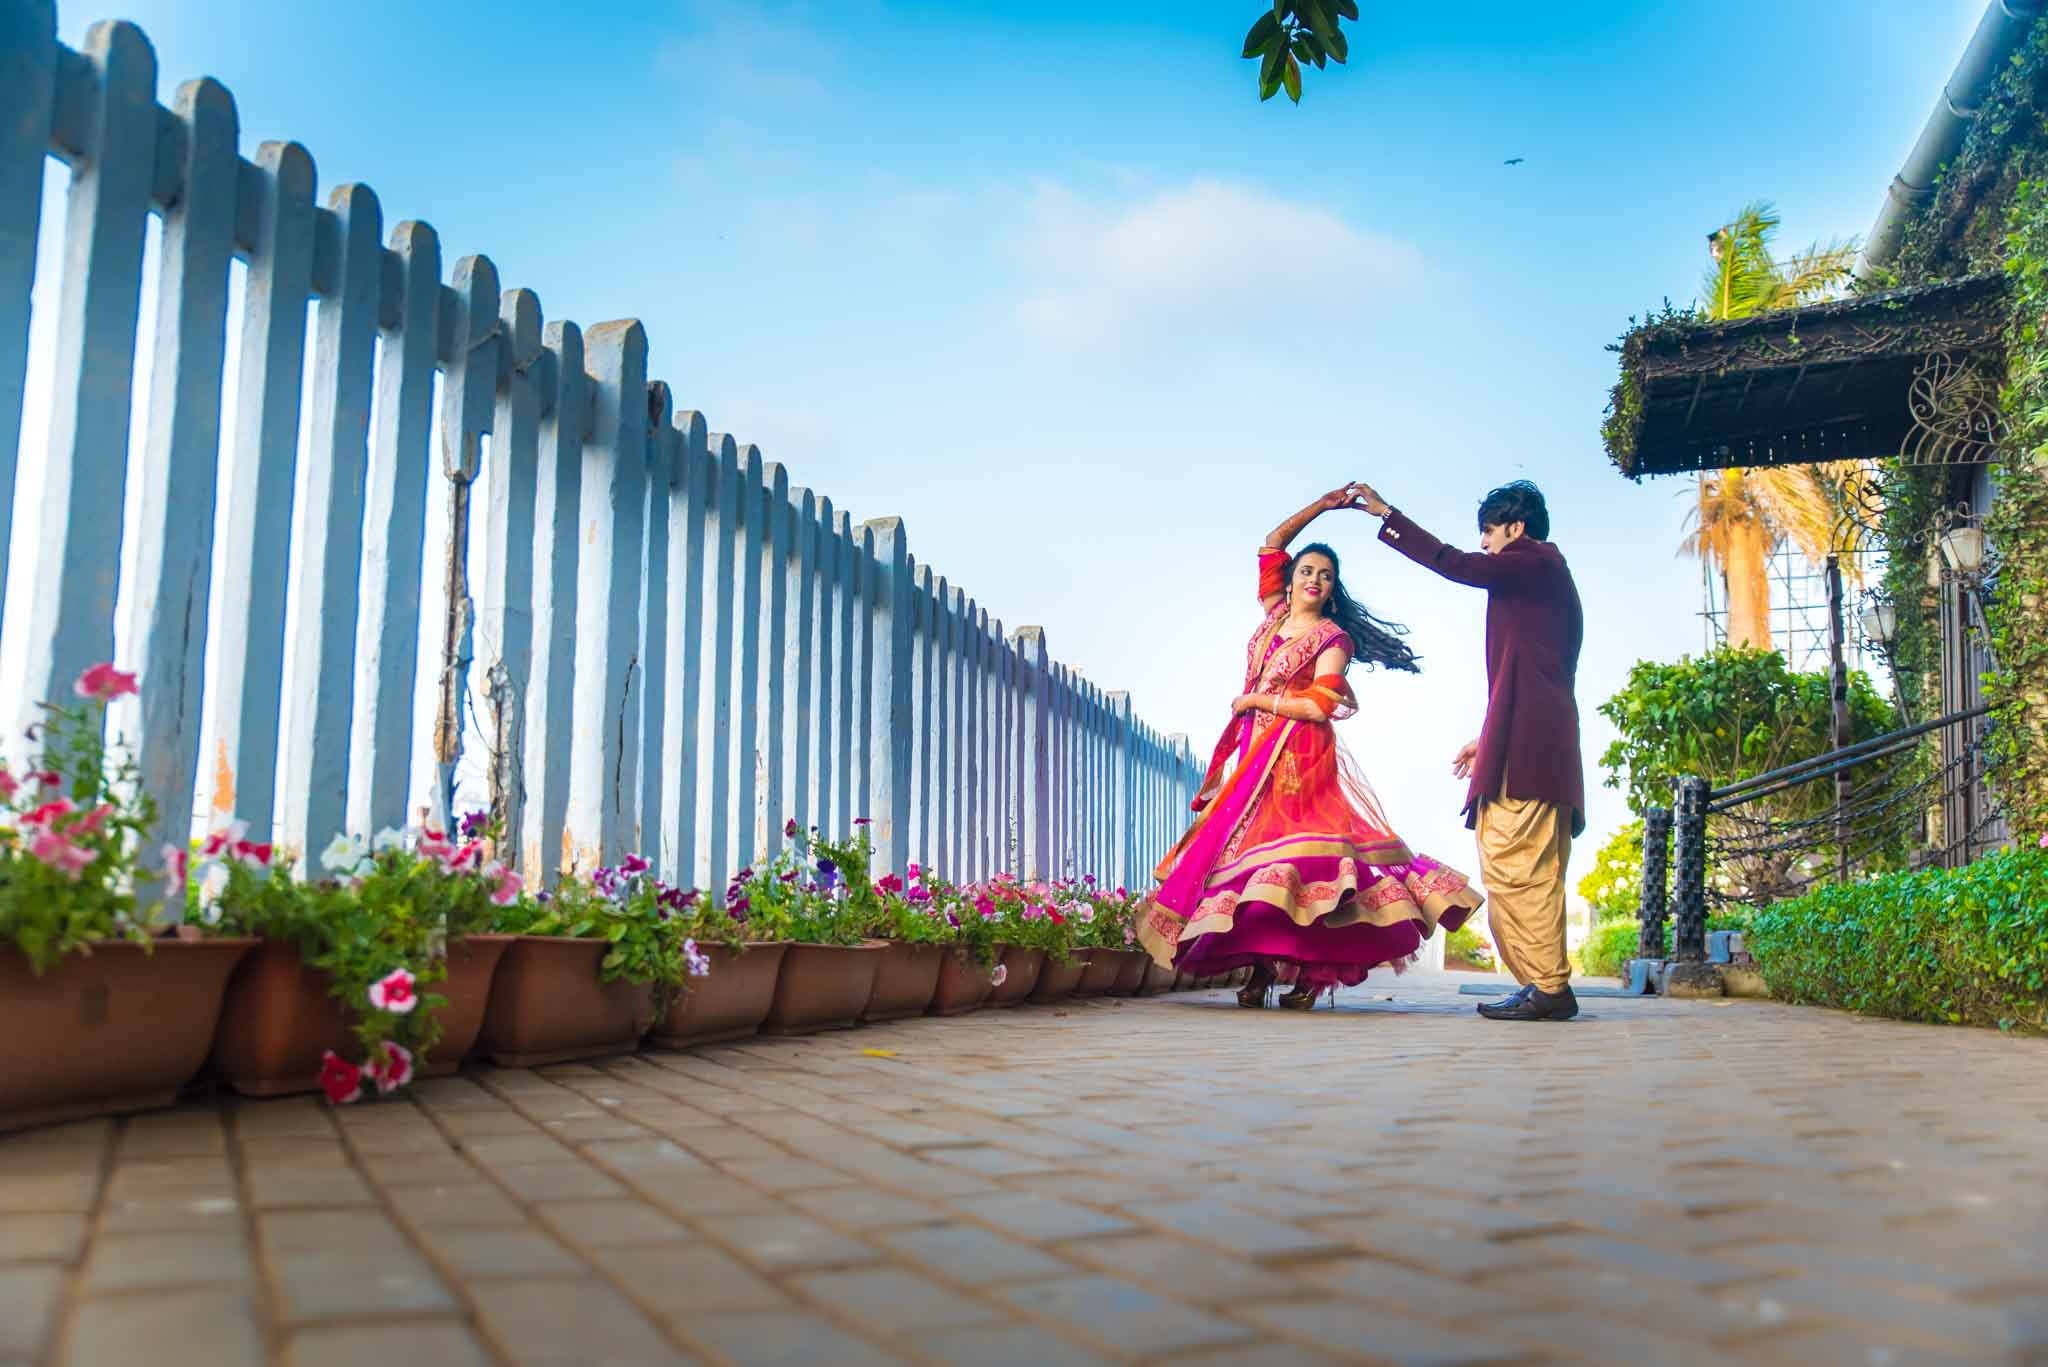 mumbai-candid-photography-wedding-whatknot-kamal-amrohi-studios-2